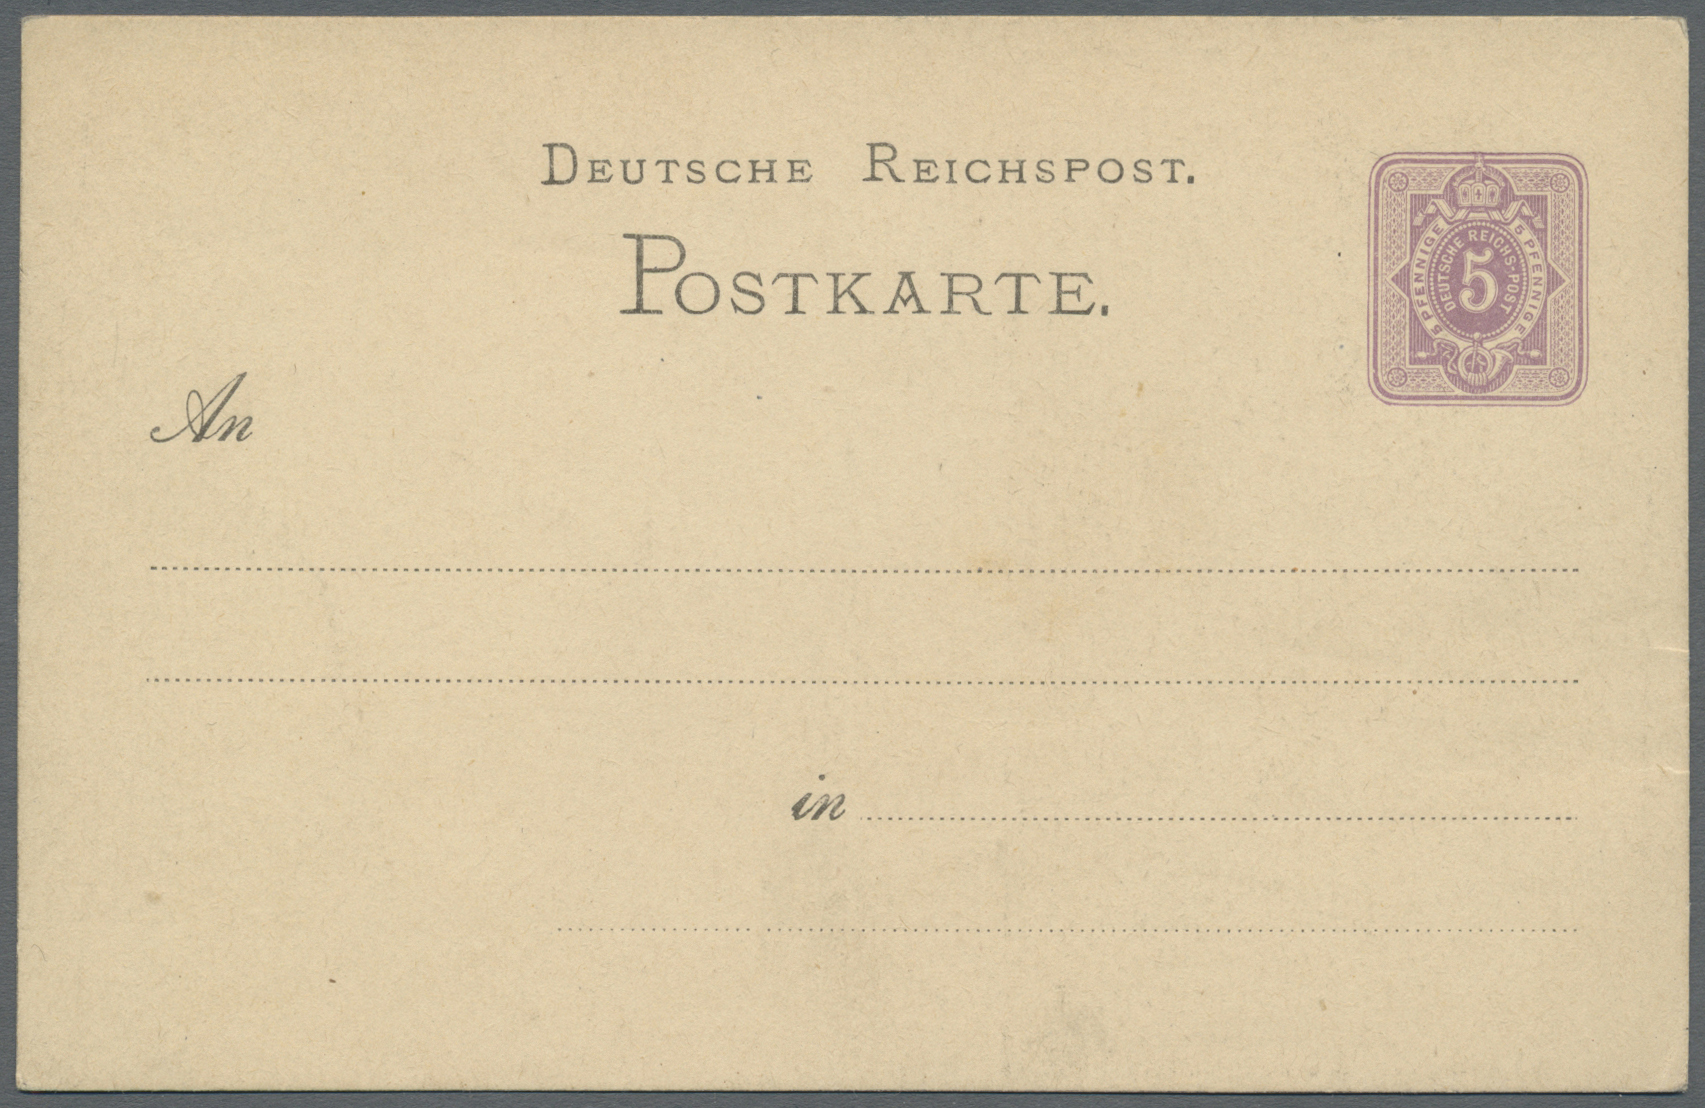 Lot 11380 - thematik: luther  -  Auktionshaus Christoph Gärtner GmbH & Co. KG Single lots Philately Overseas & Europe. Auction #39 Day 4